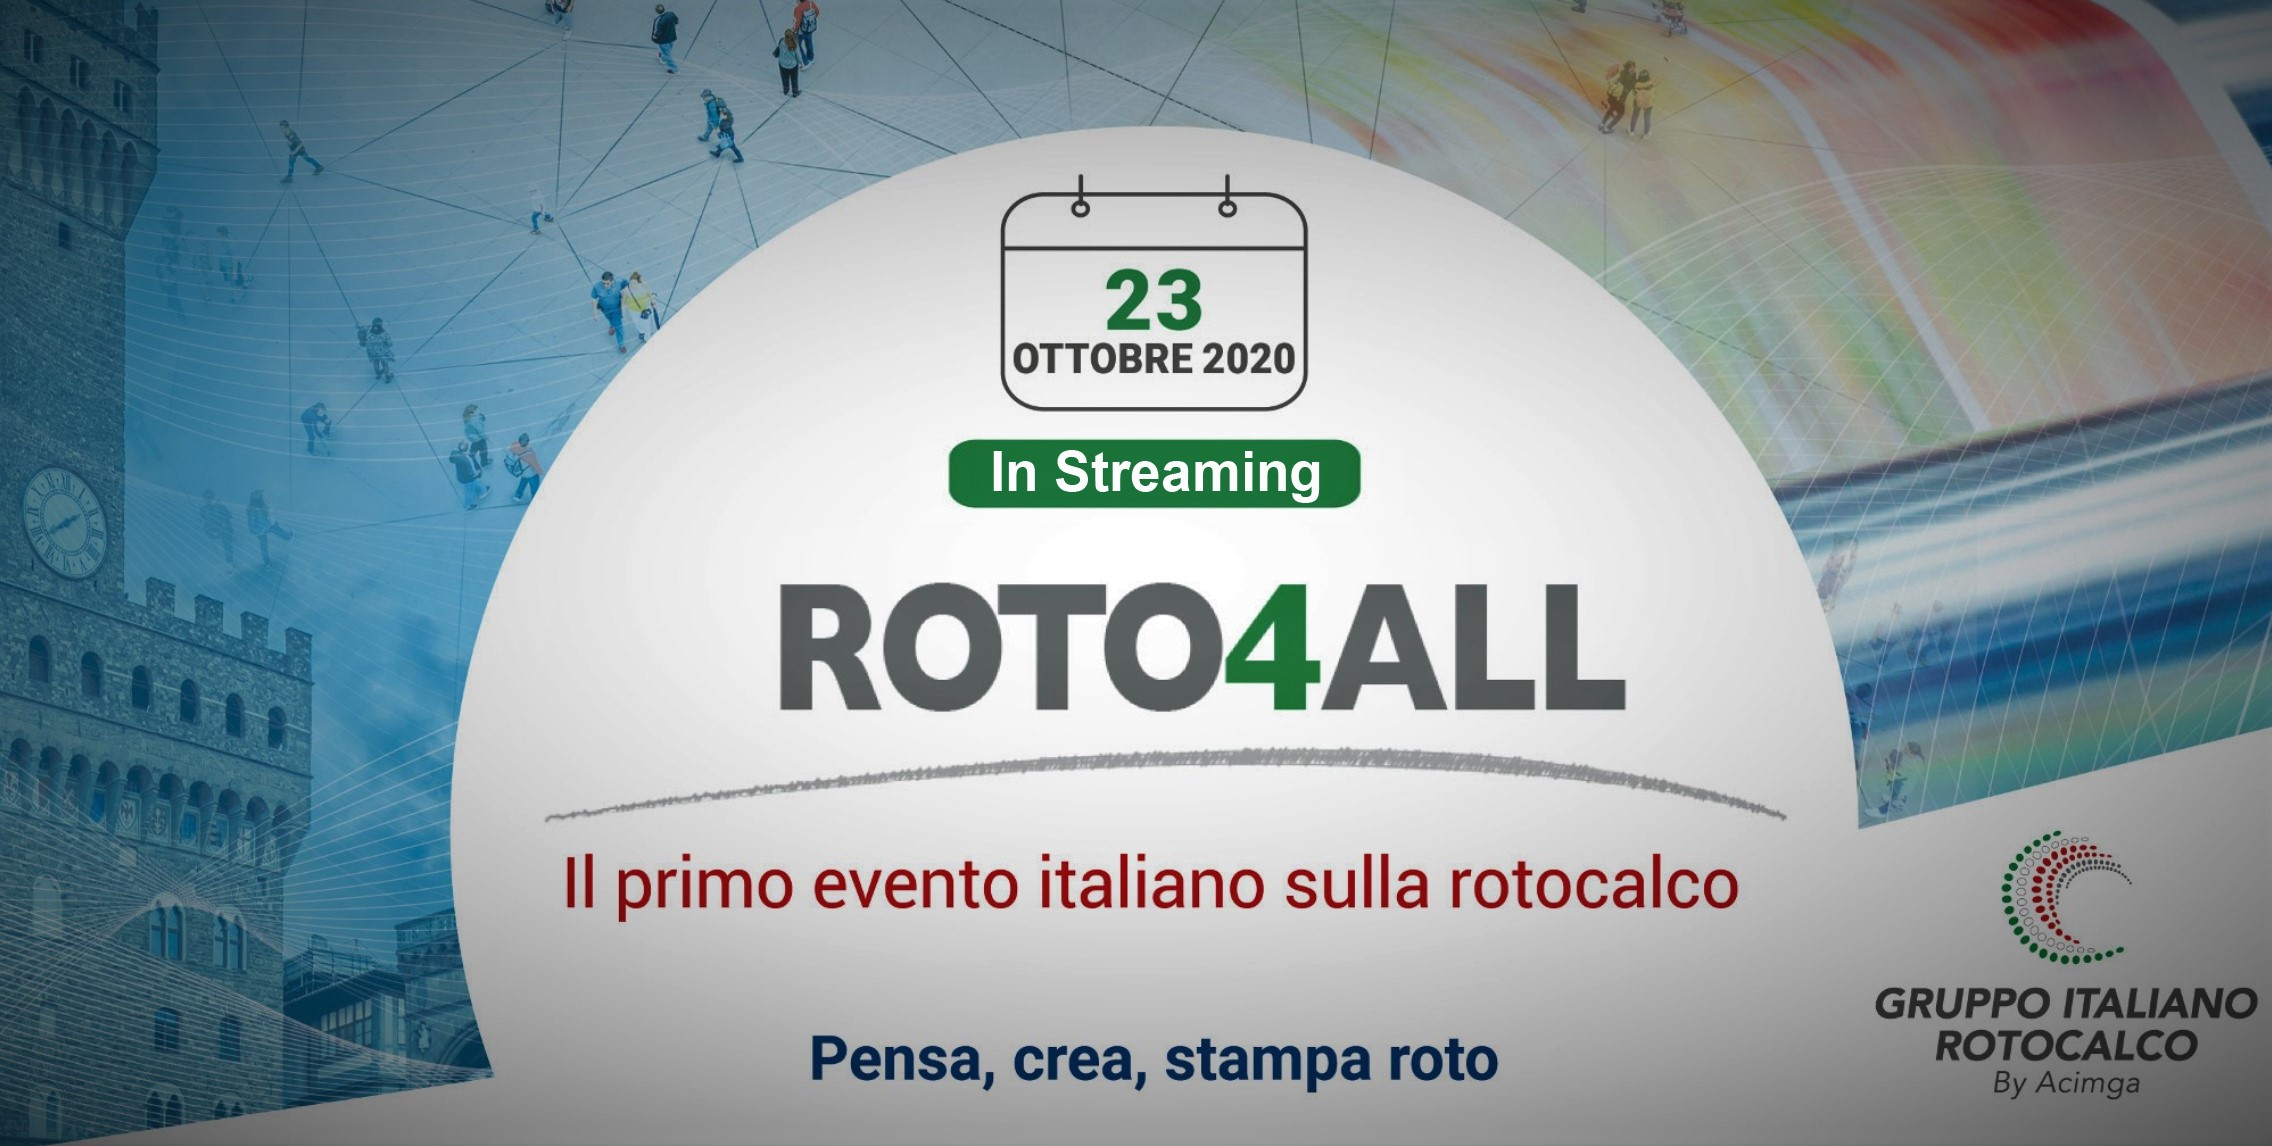 Roto4All non si ferma e andrà in streaming